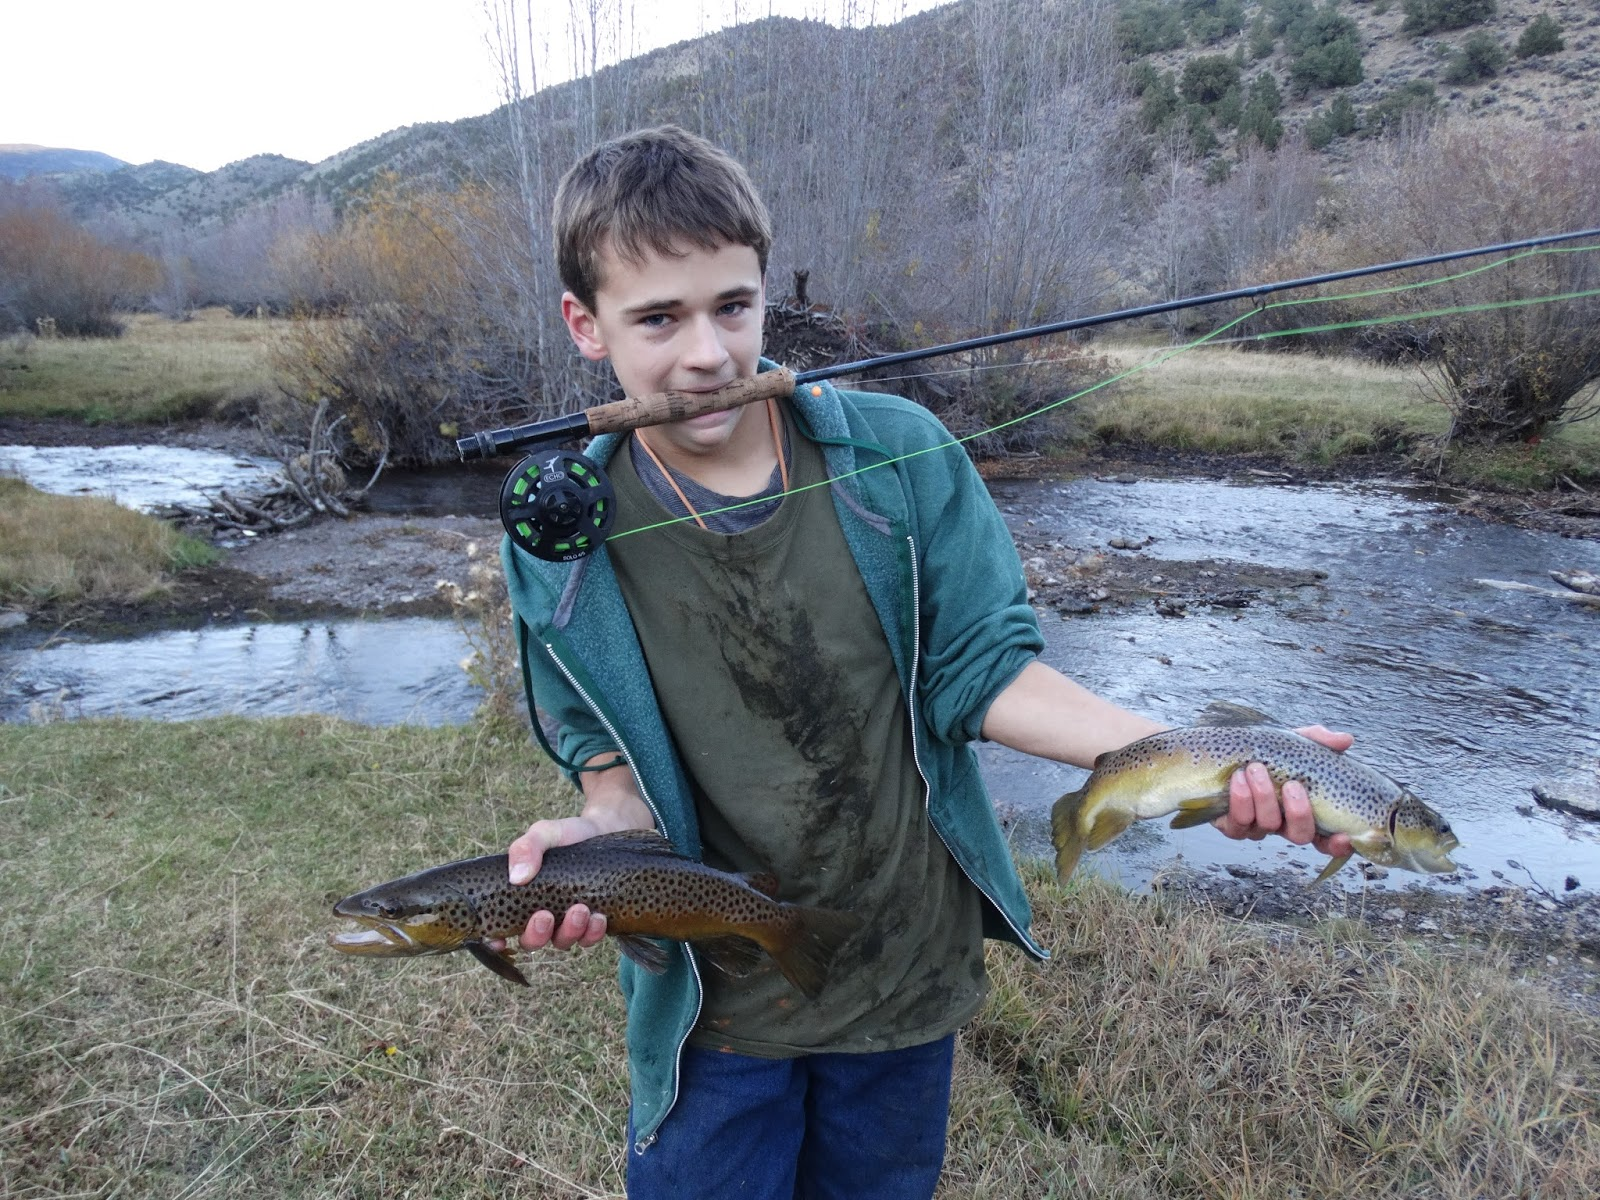 Southern utah fly fishing quiet fly fisher guide service for Fly fishing guide jobs